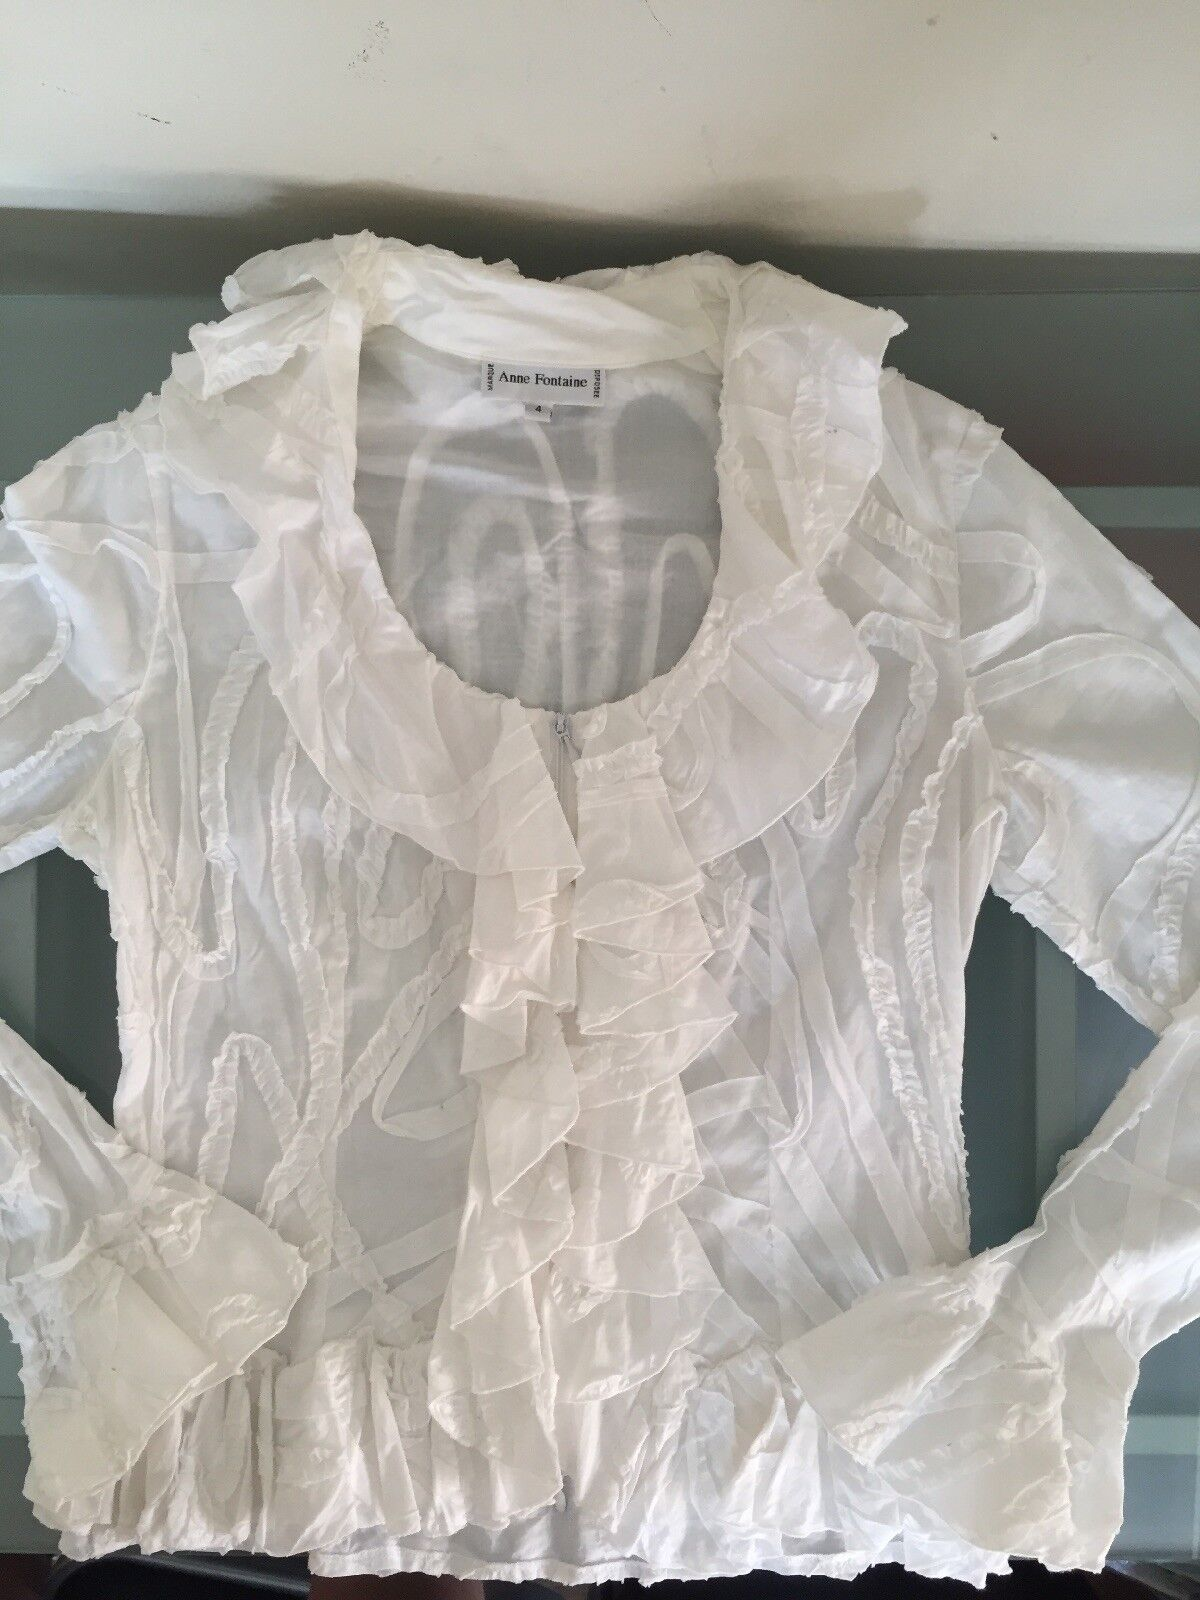 Anne Fontaine White Ruffled Blouse-Sz.4 - image 3